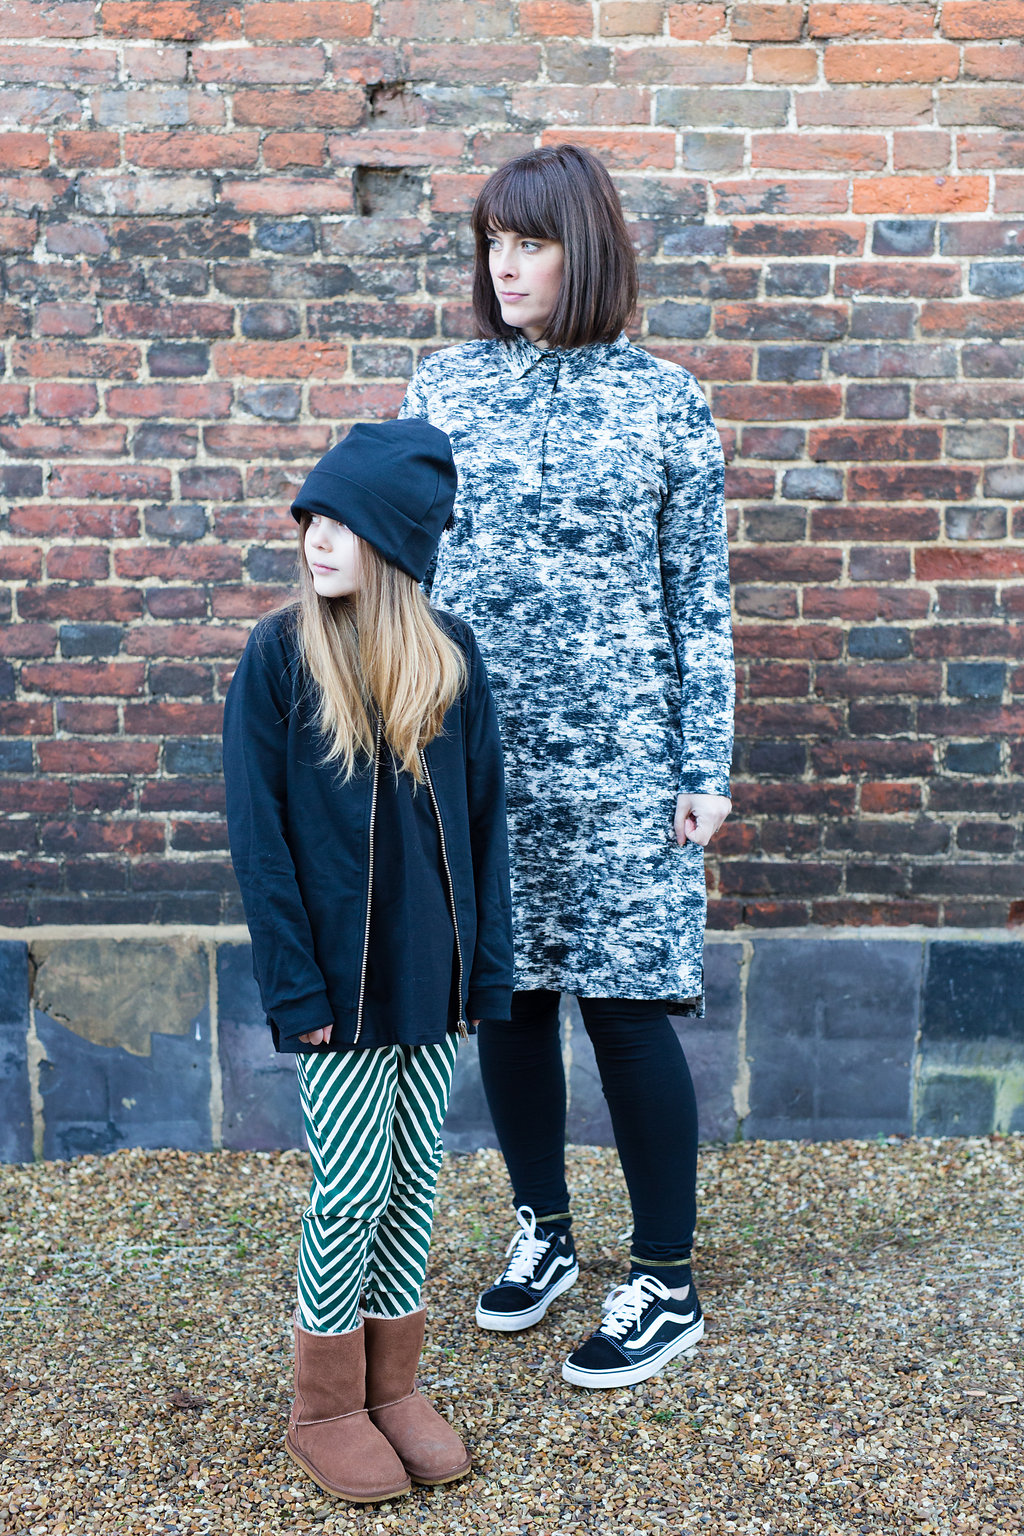 Papu organic cotton ethical easy to wear kids and adults clothing